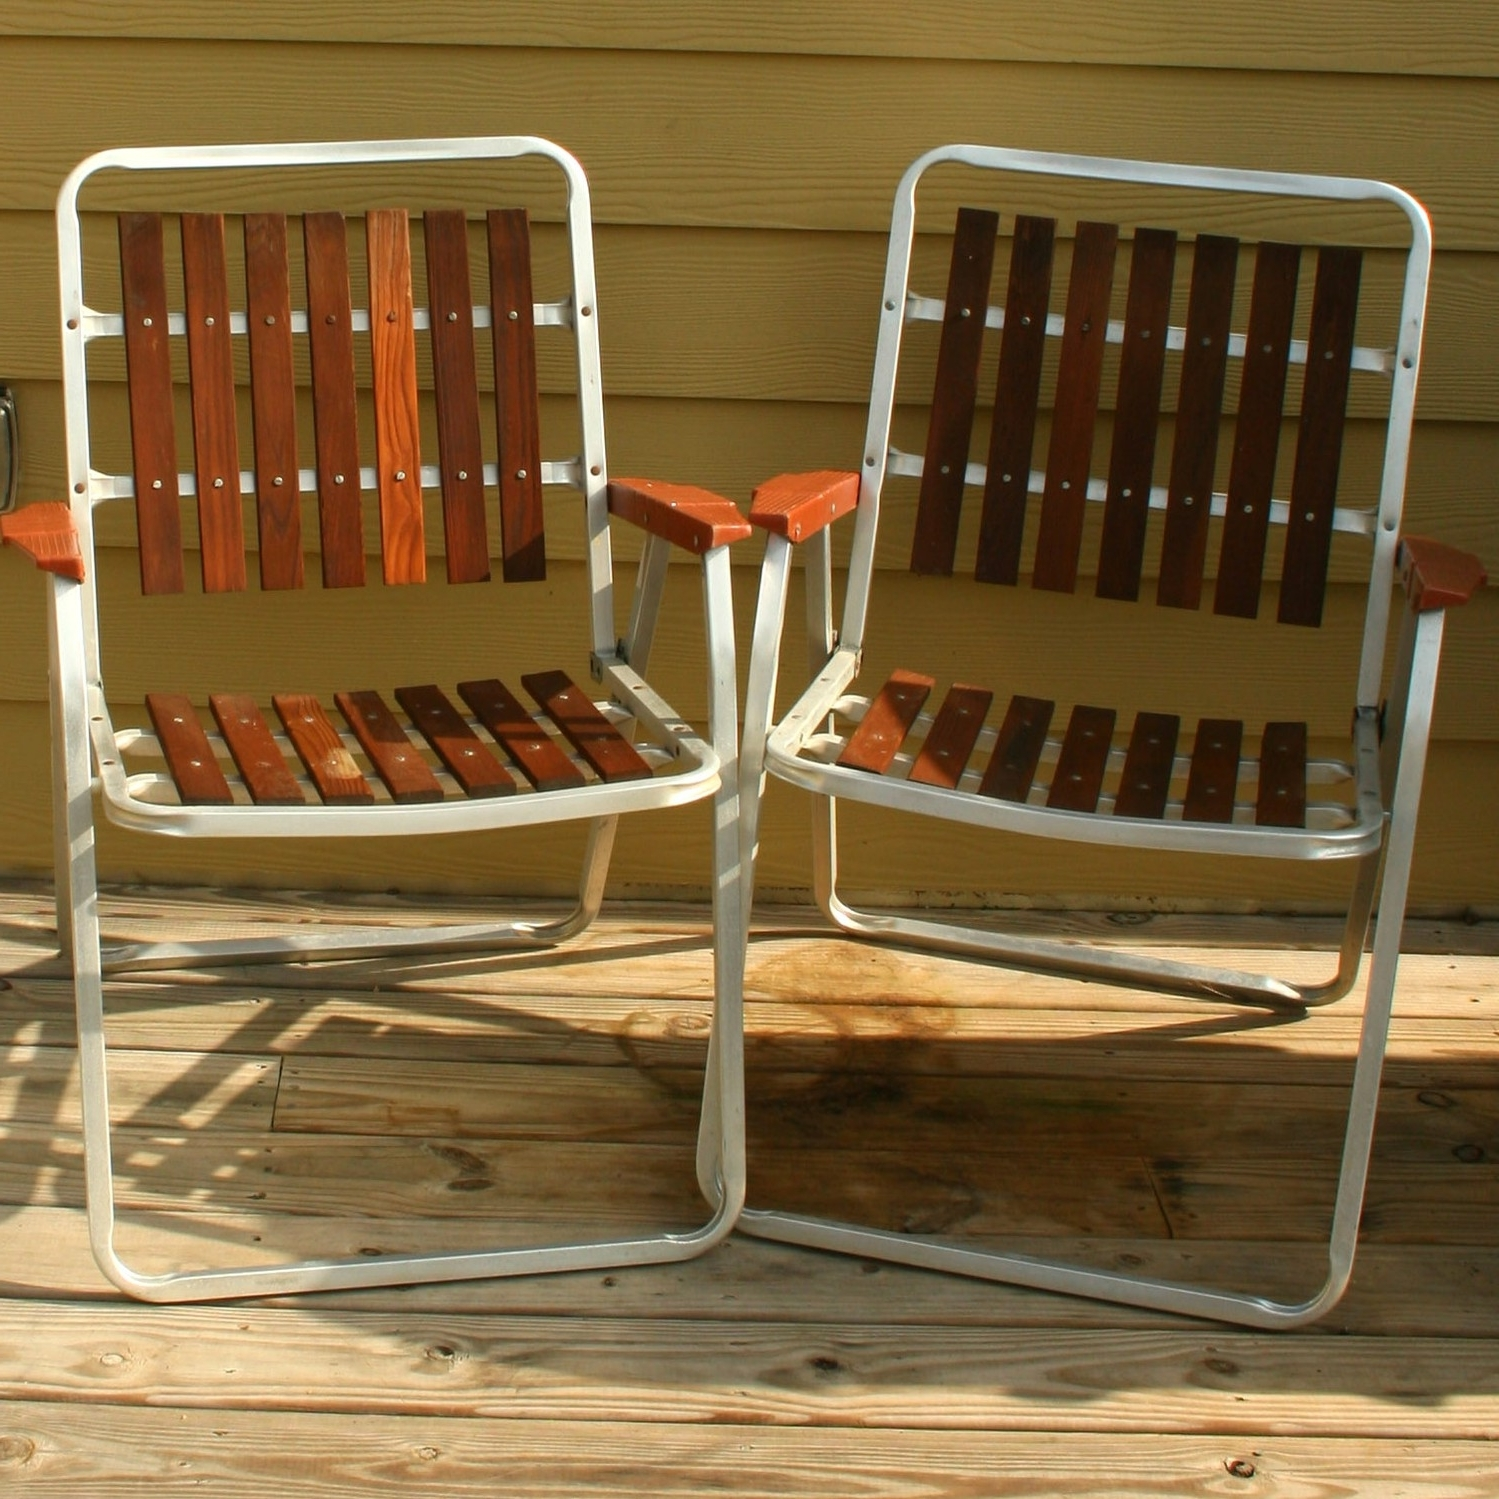 Retro Outdoor Rocking Chairs With Regard To Popular Rare Gardenline Folding Rocking Chair Photo Ideas Innovative Patio (View 10 of 15)